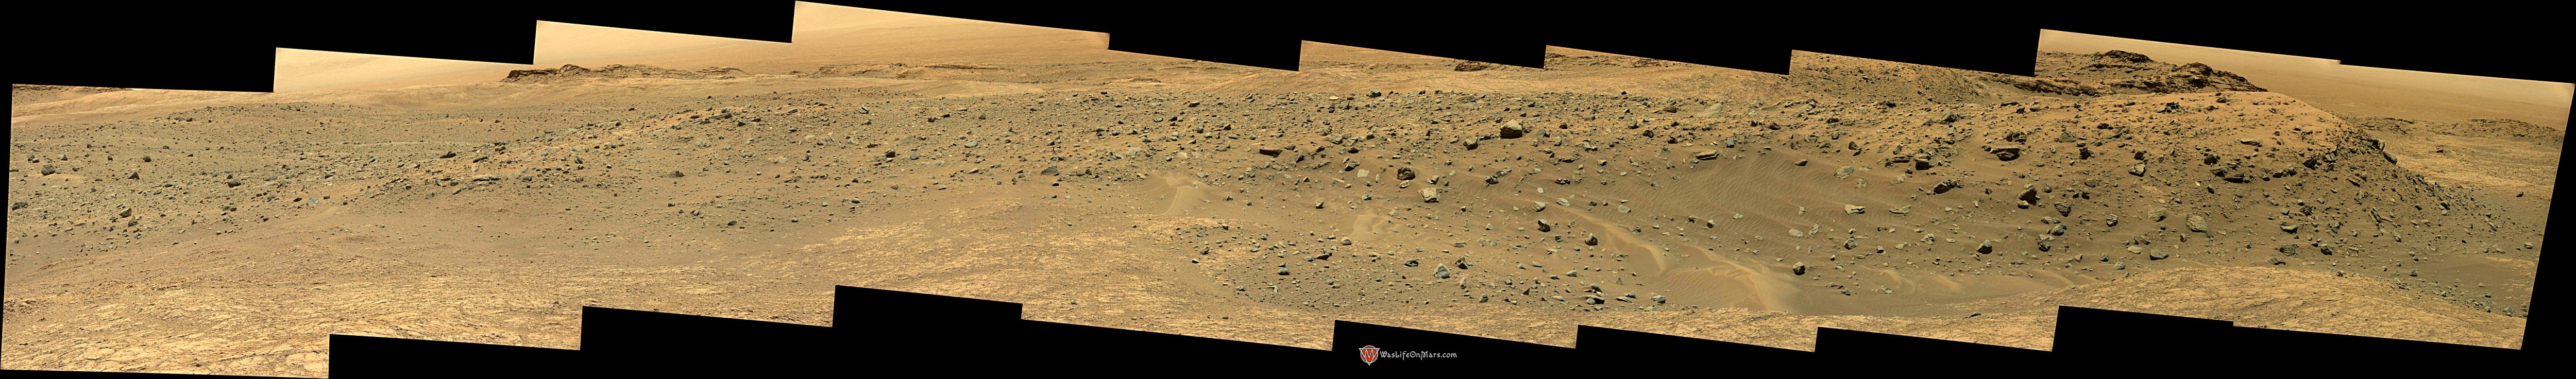 panoramic curiosity rover view 2e - sol 1399 - was life on mars